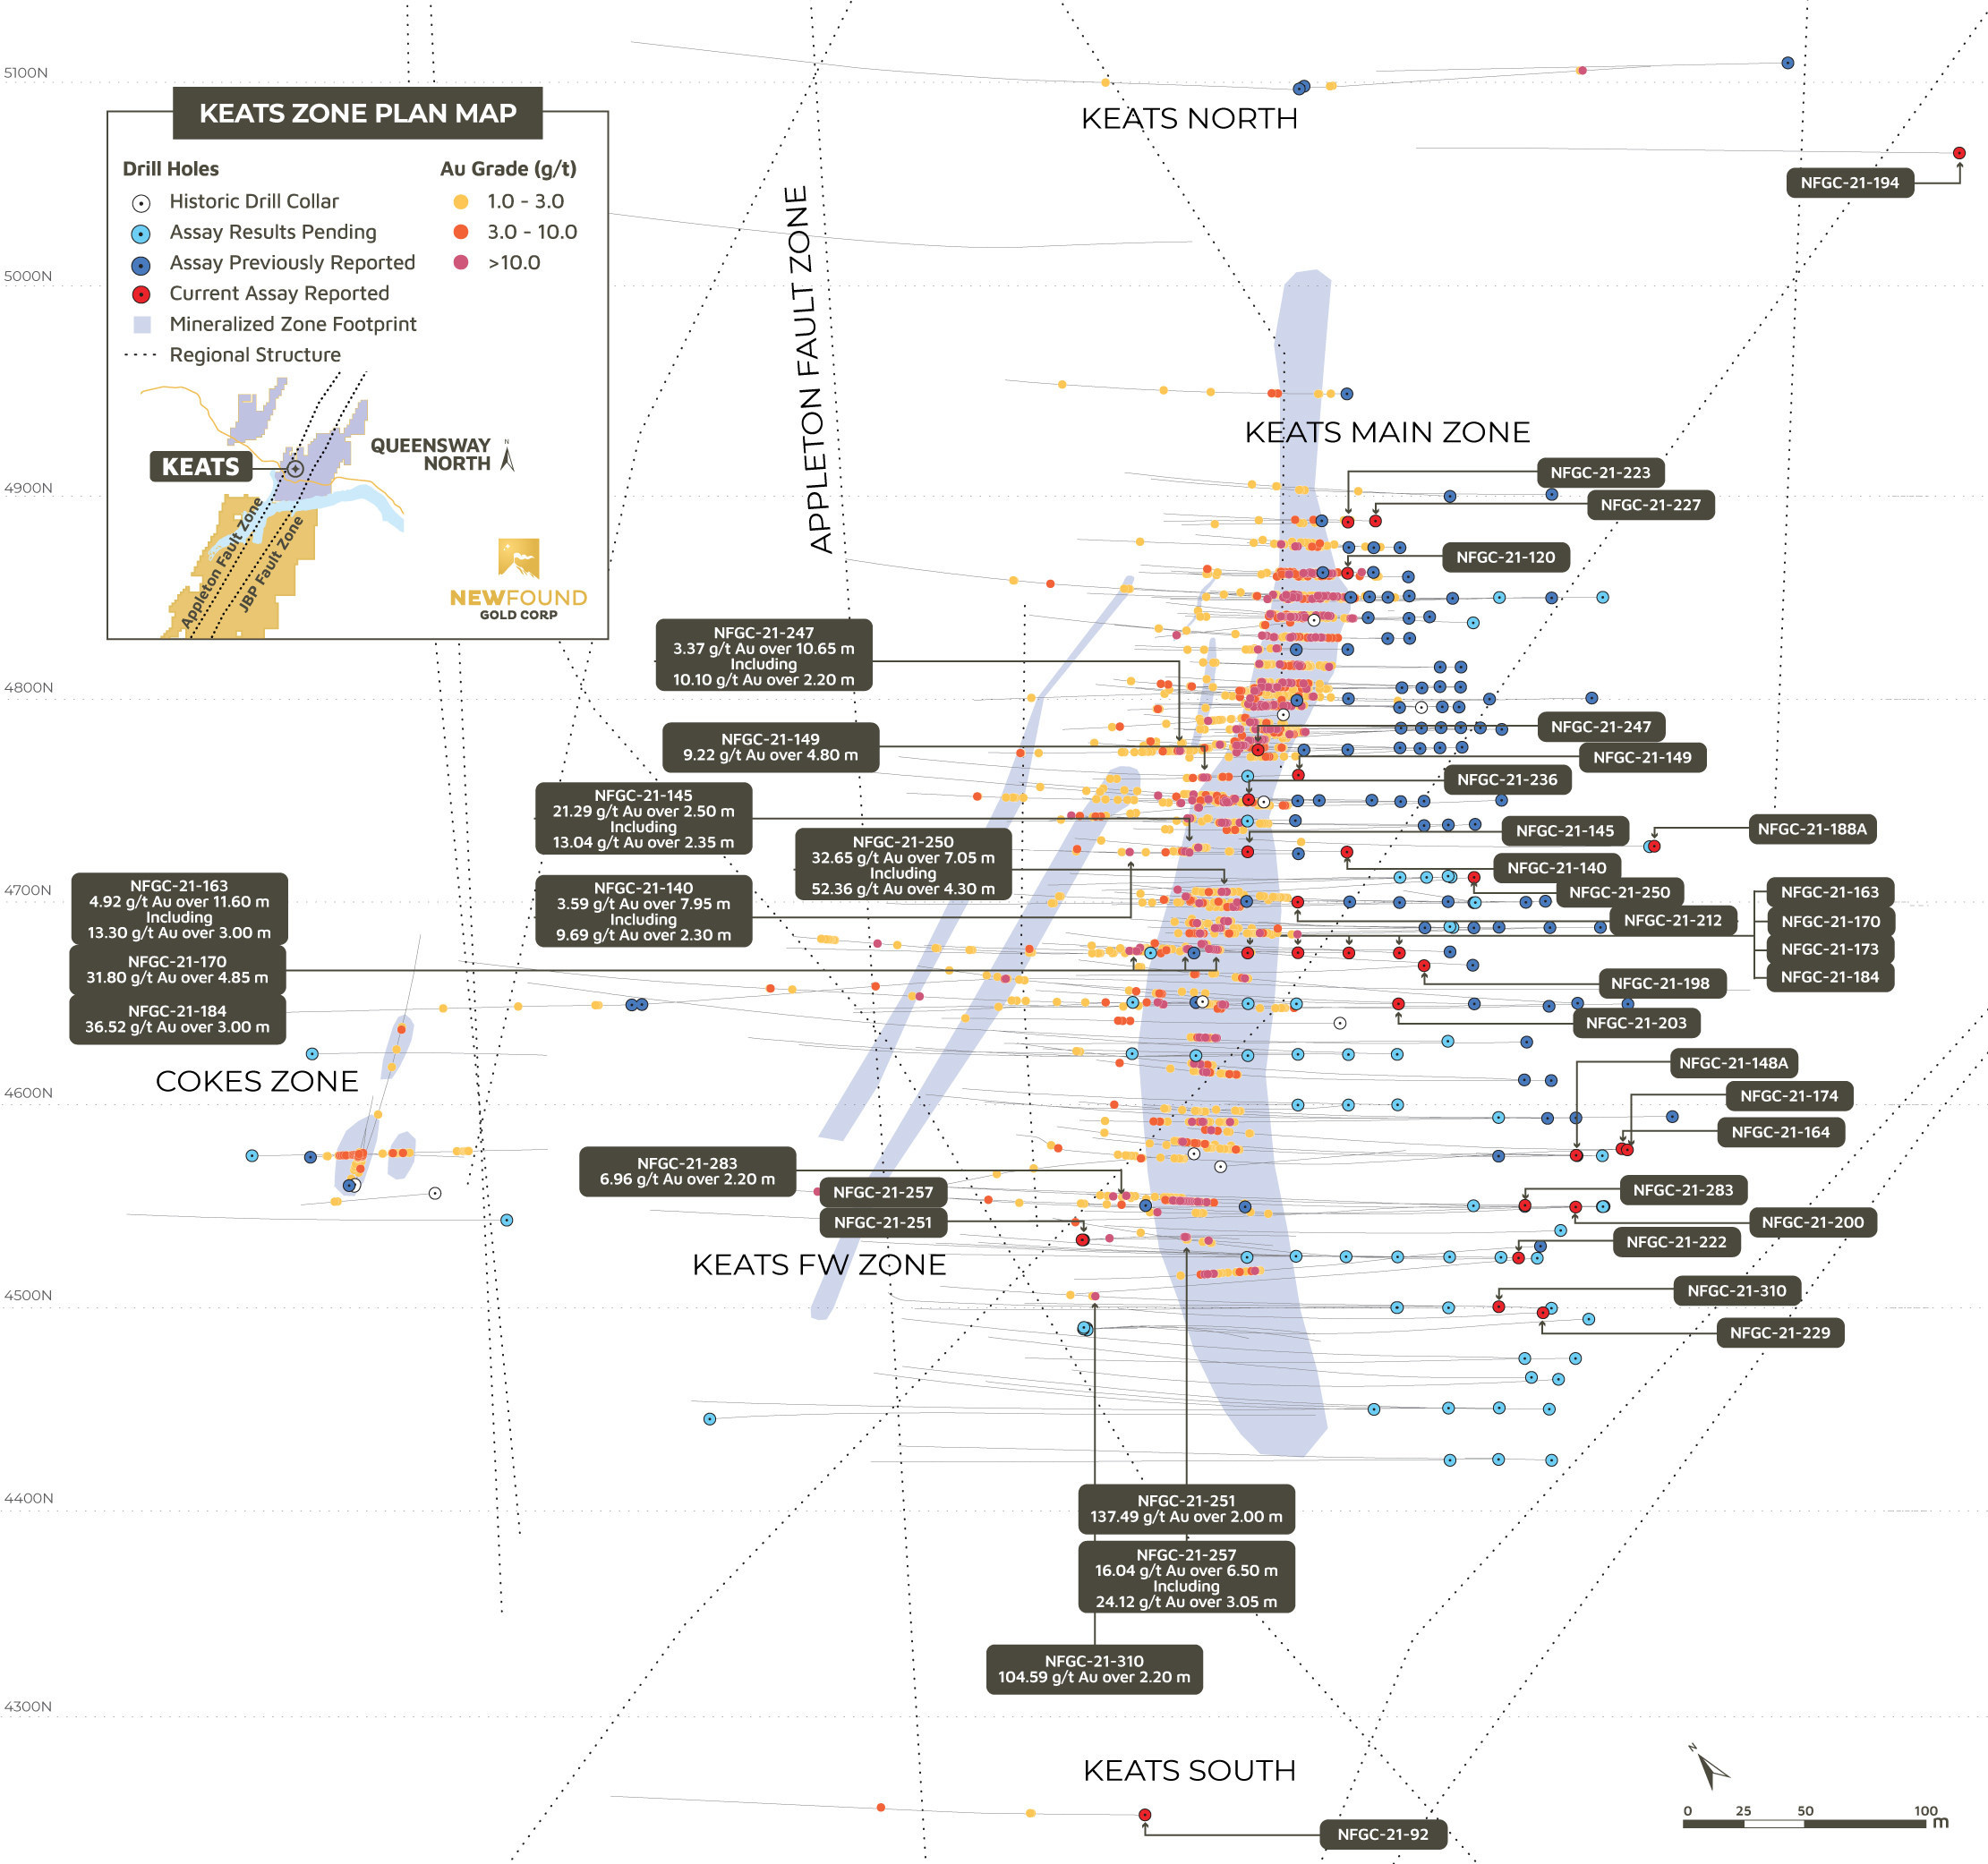 Figure 1. Keats Plan View (CNW Group/New Found Gold Corp.)